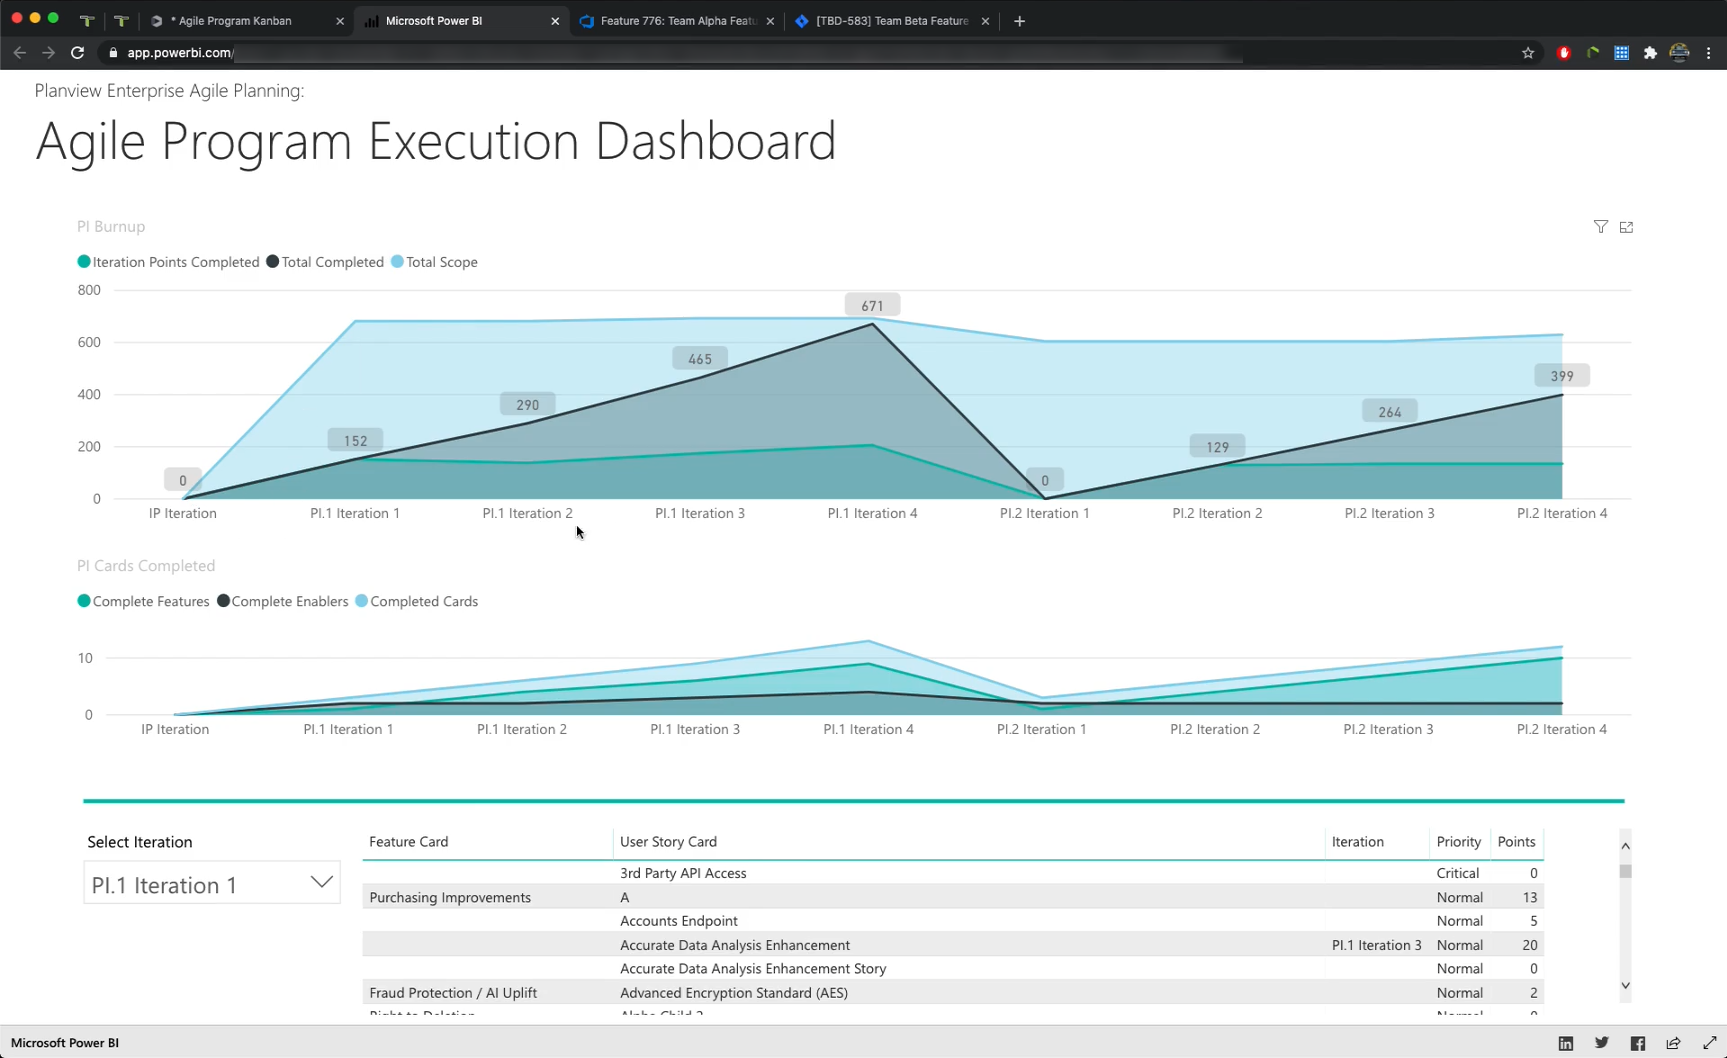 Agile Program Execution Dashboard